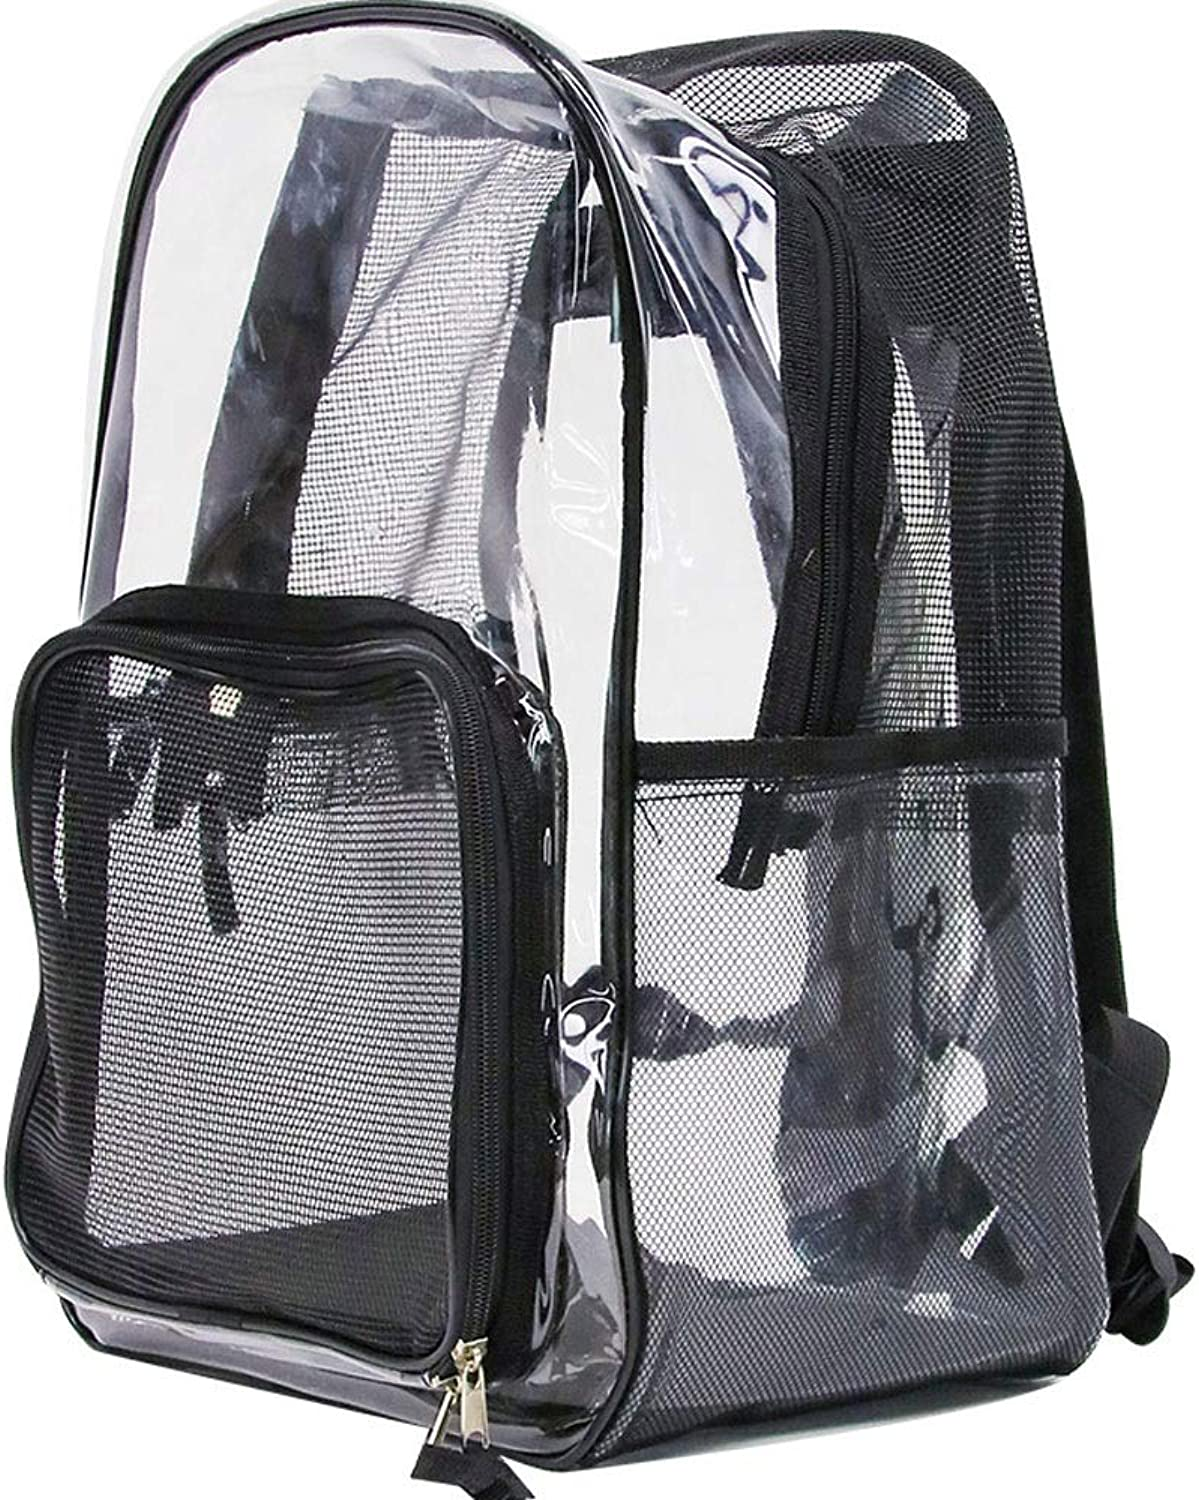 Alapet Oxford Black Transparent Pet Backpack, Transparent Bag Body Widening The Field of View, The Breathable Mesh is Comfortable and Not Stuffy, Suitable for Pets Up to 5 kg,Durable